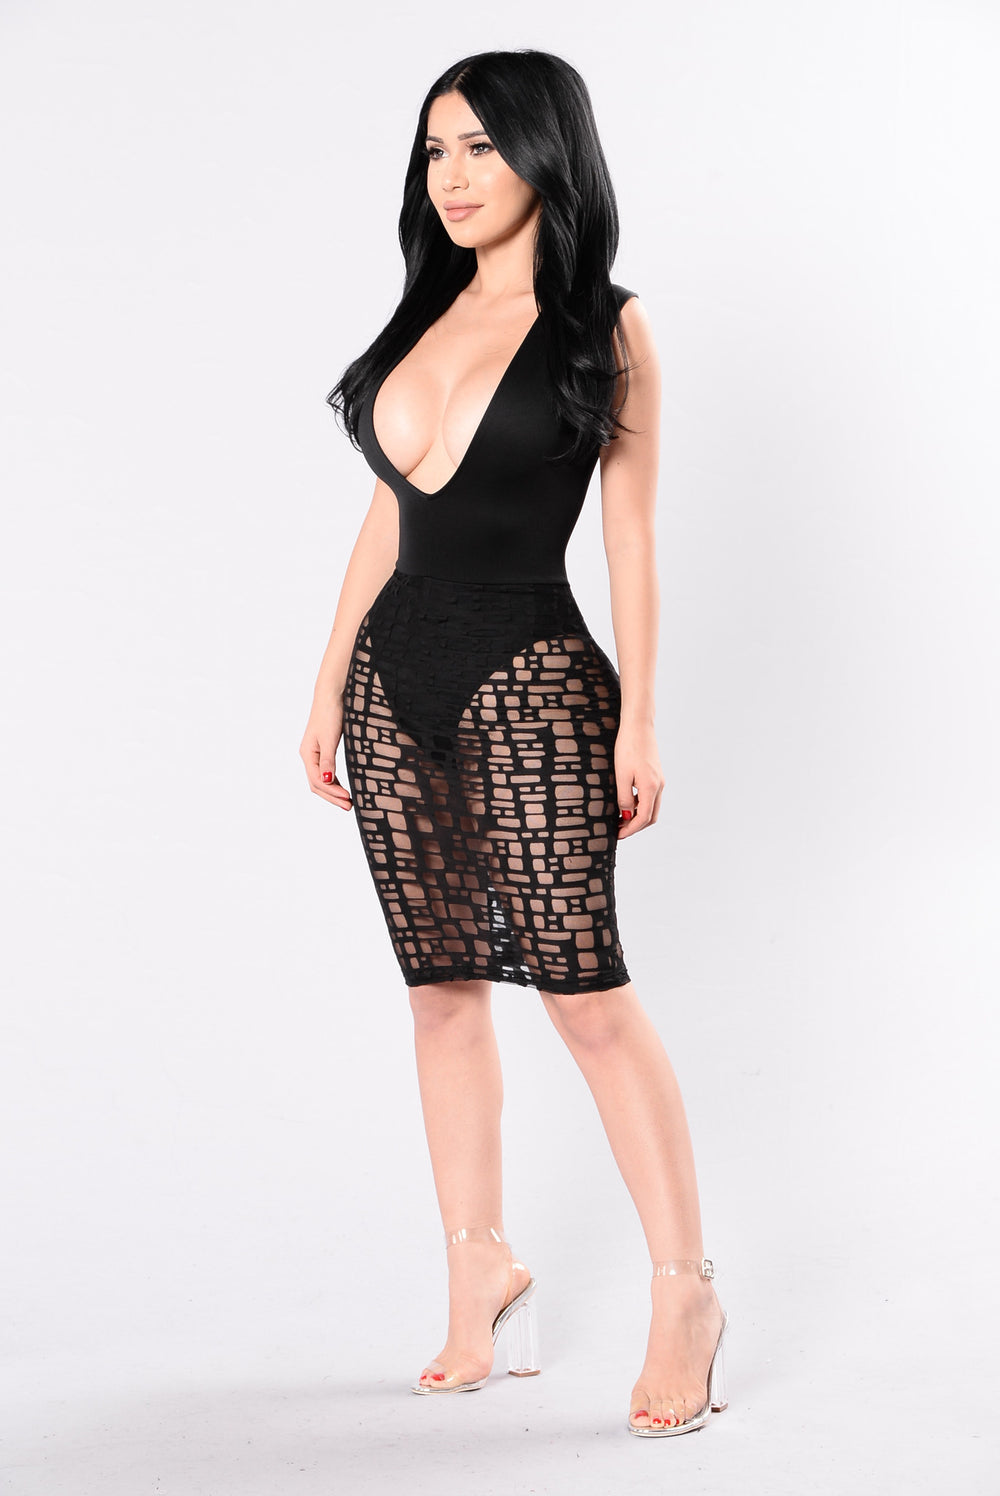 Sheer Genius Dress - Black